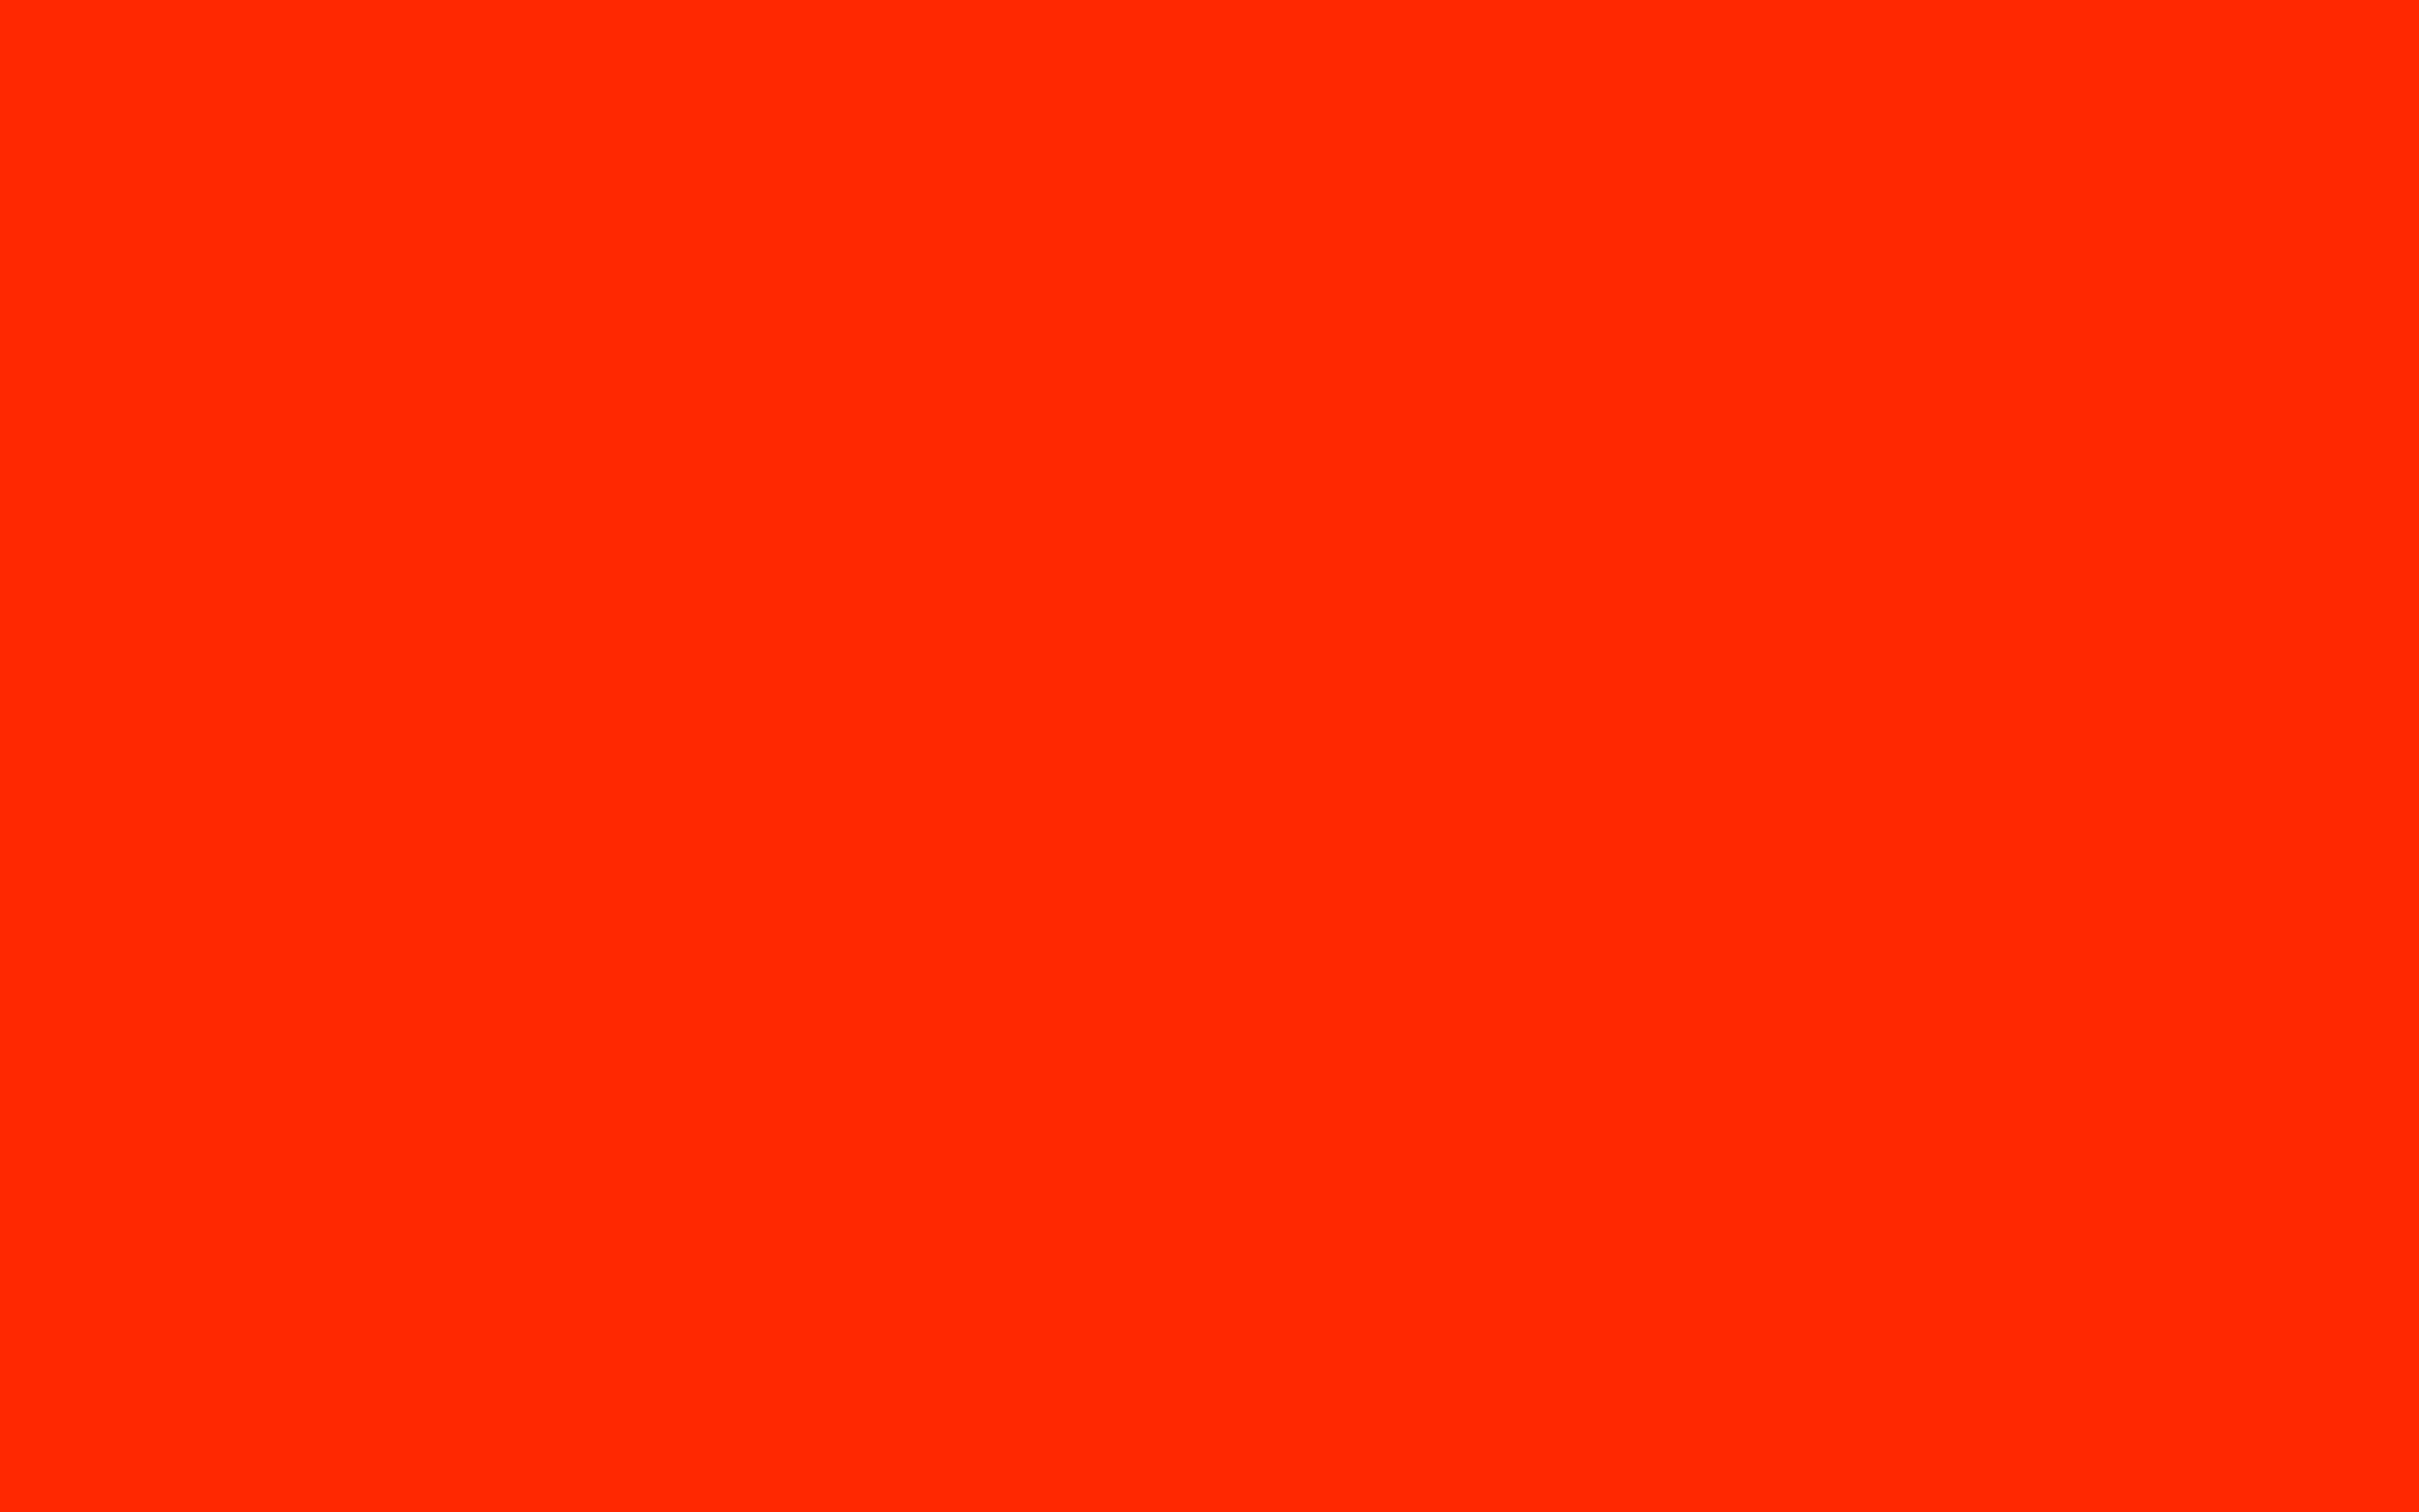 2880x1800-ferrari-red-solid-color-background.jpg